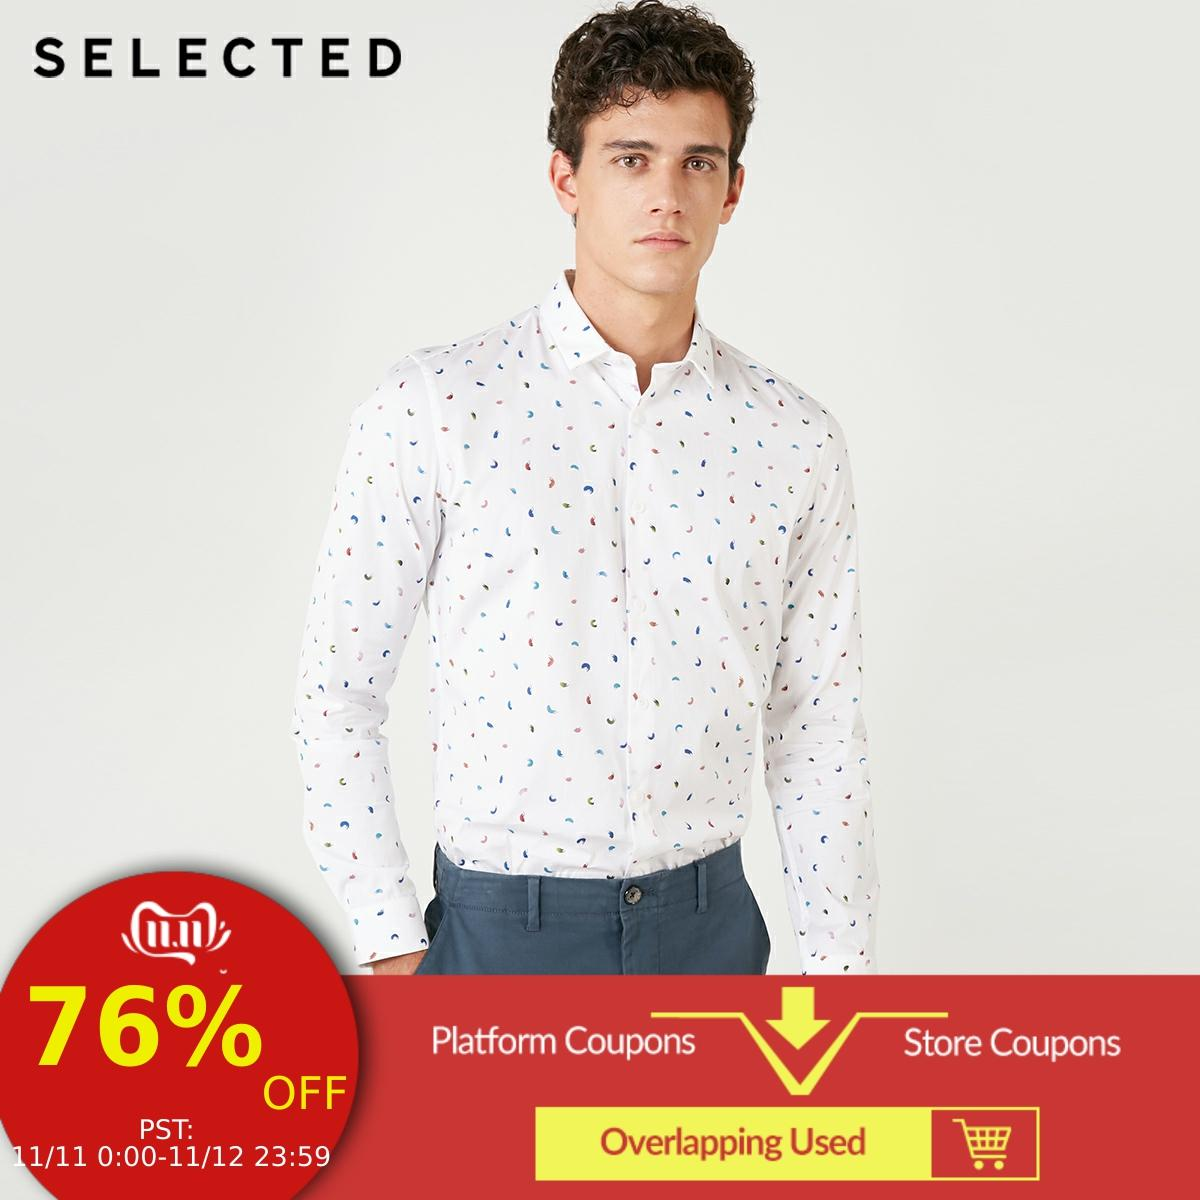 SELECTED <font><b>Men's</b></font> Slim Fit 100% Cotton <font><b>Shirt</b></font> S|418405522 image